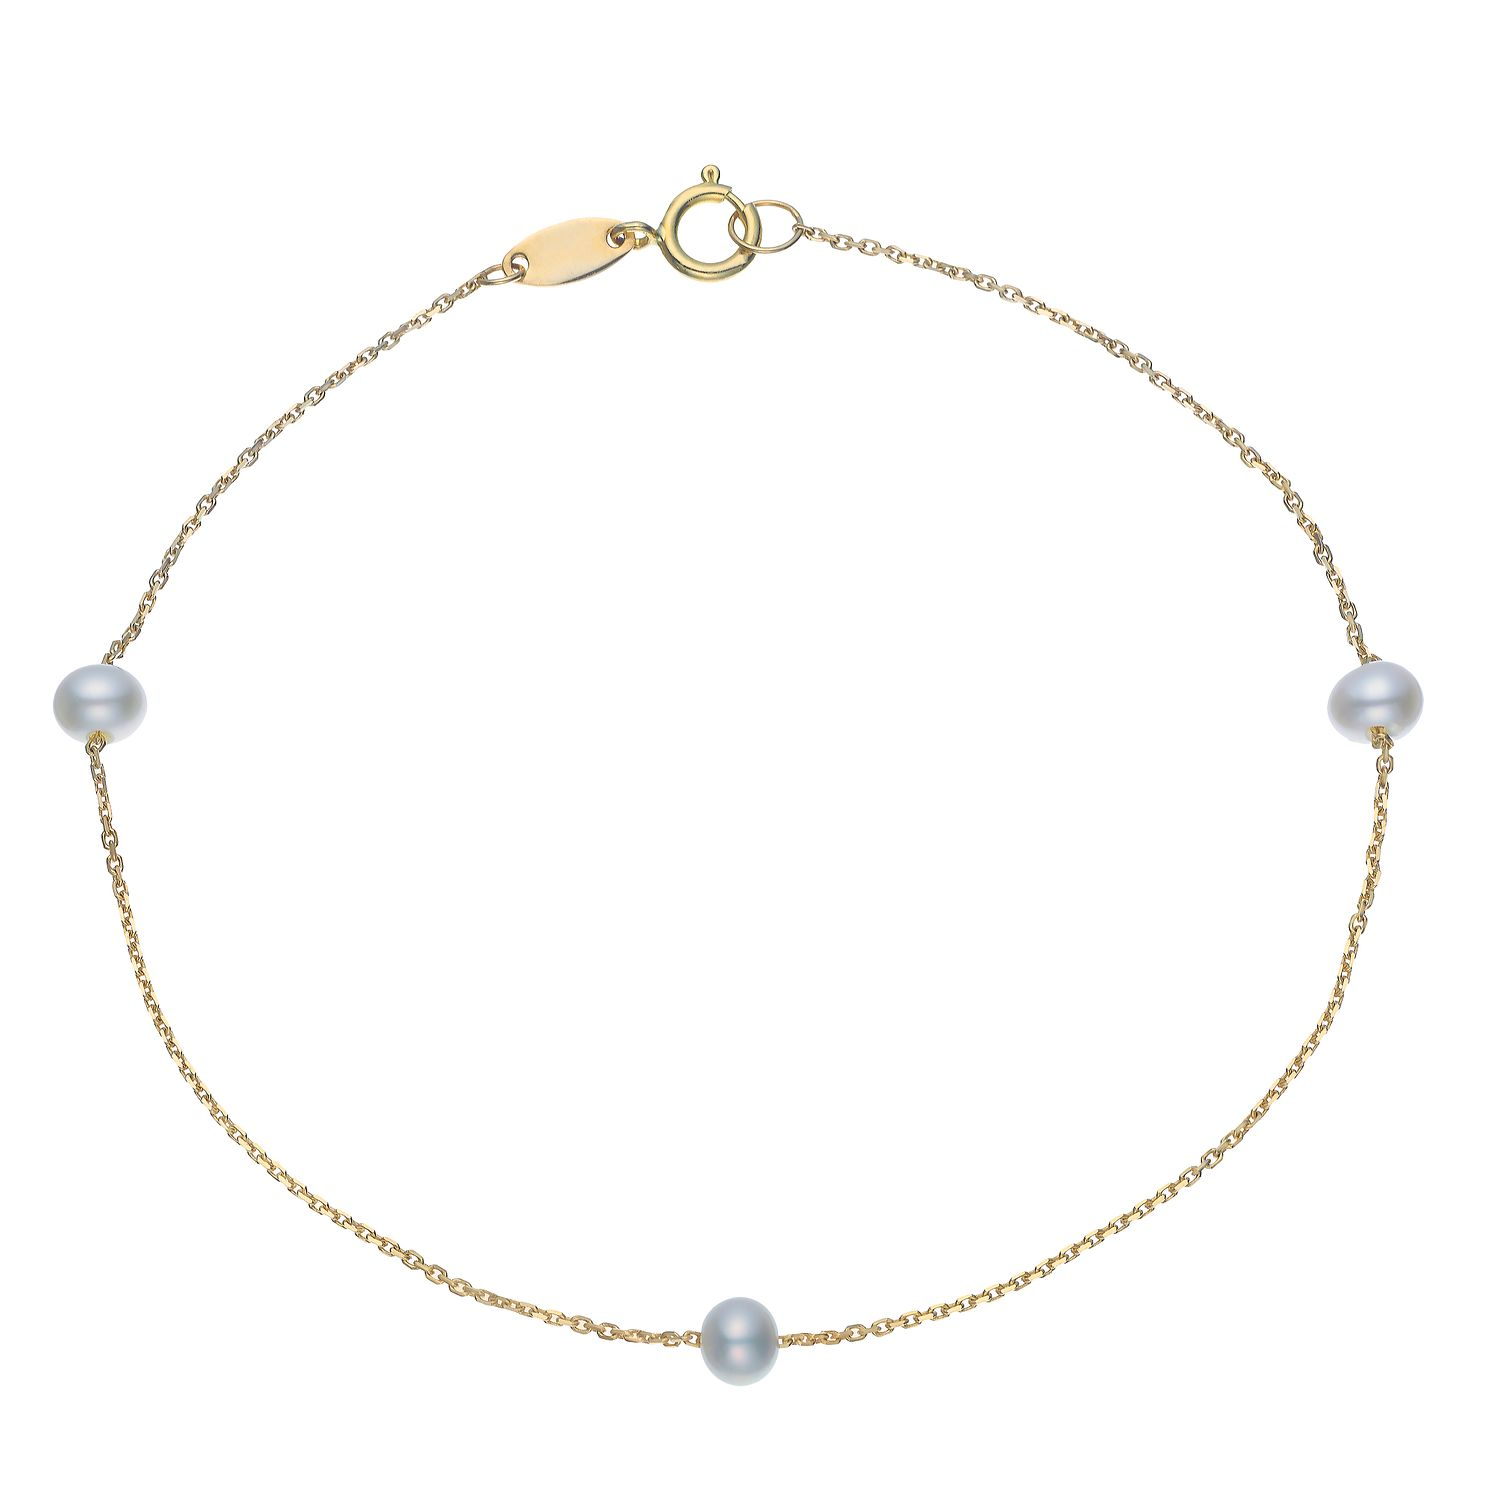 9ct Yellow Gold Cultured Freshwater Pearl Bracelet - Product number 5850258